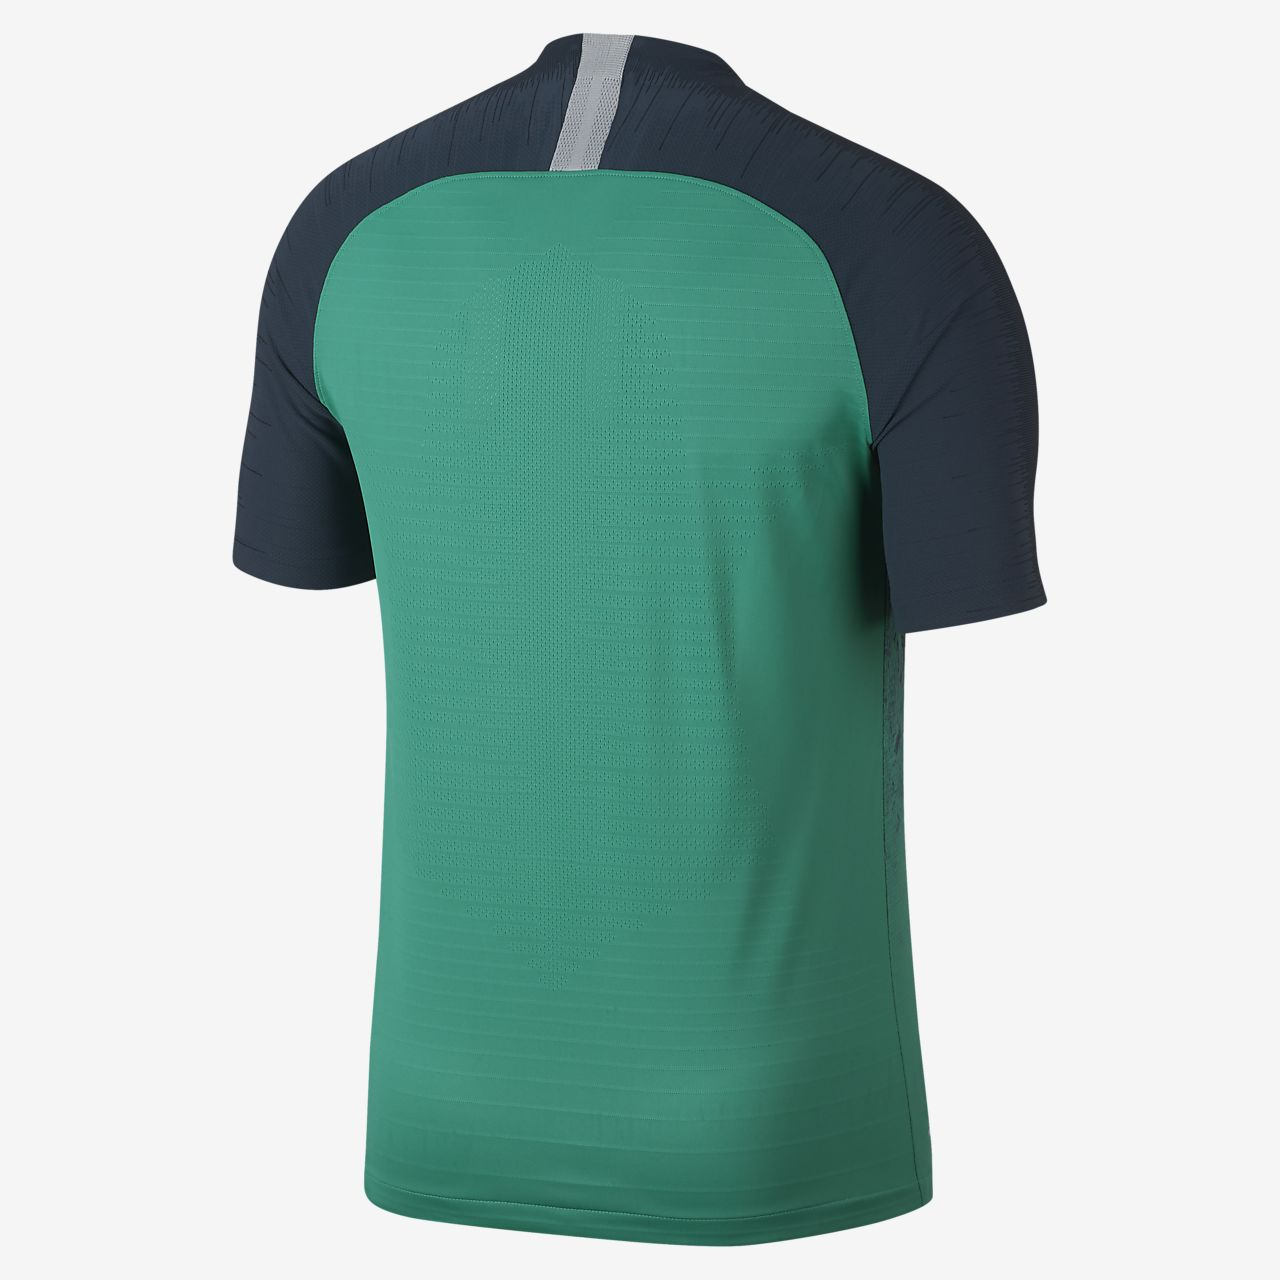 0eefd3c71 Nike VaporKnit Tottenham Hotspur FC Match Men s Short-Sleeve Top ...